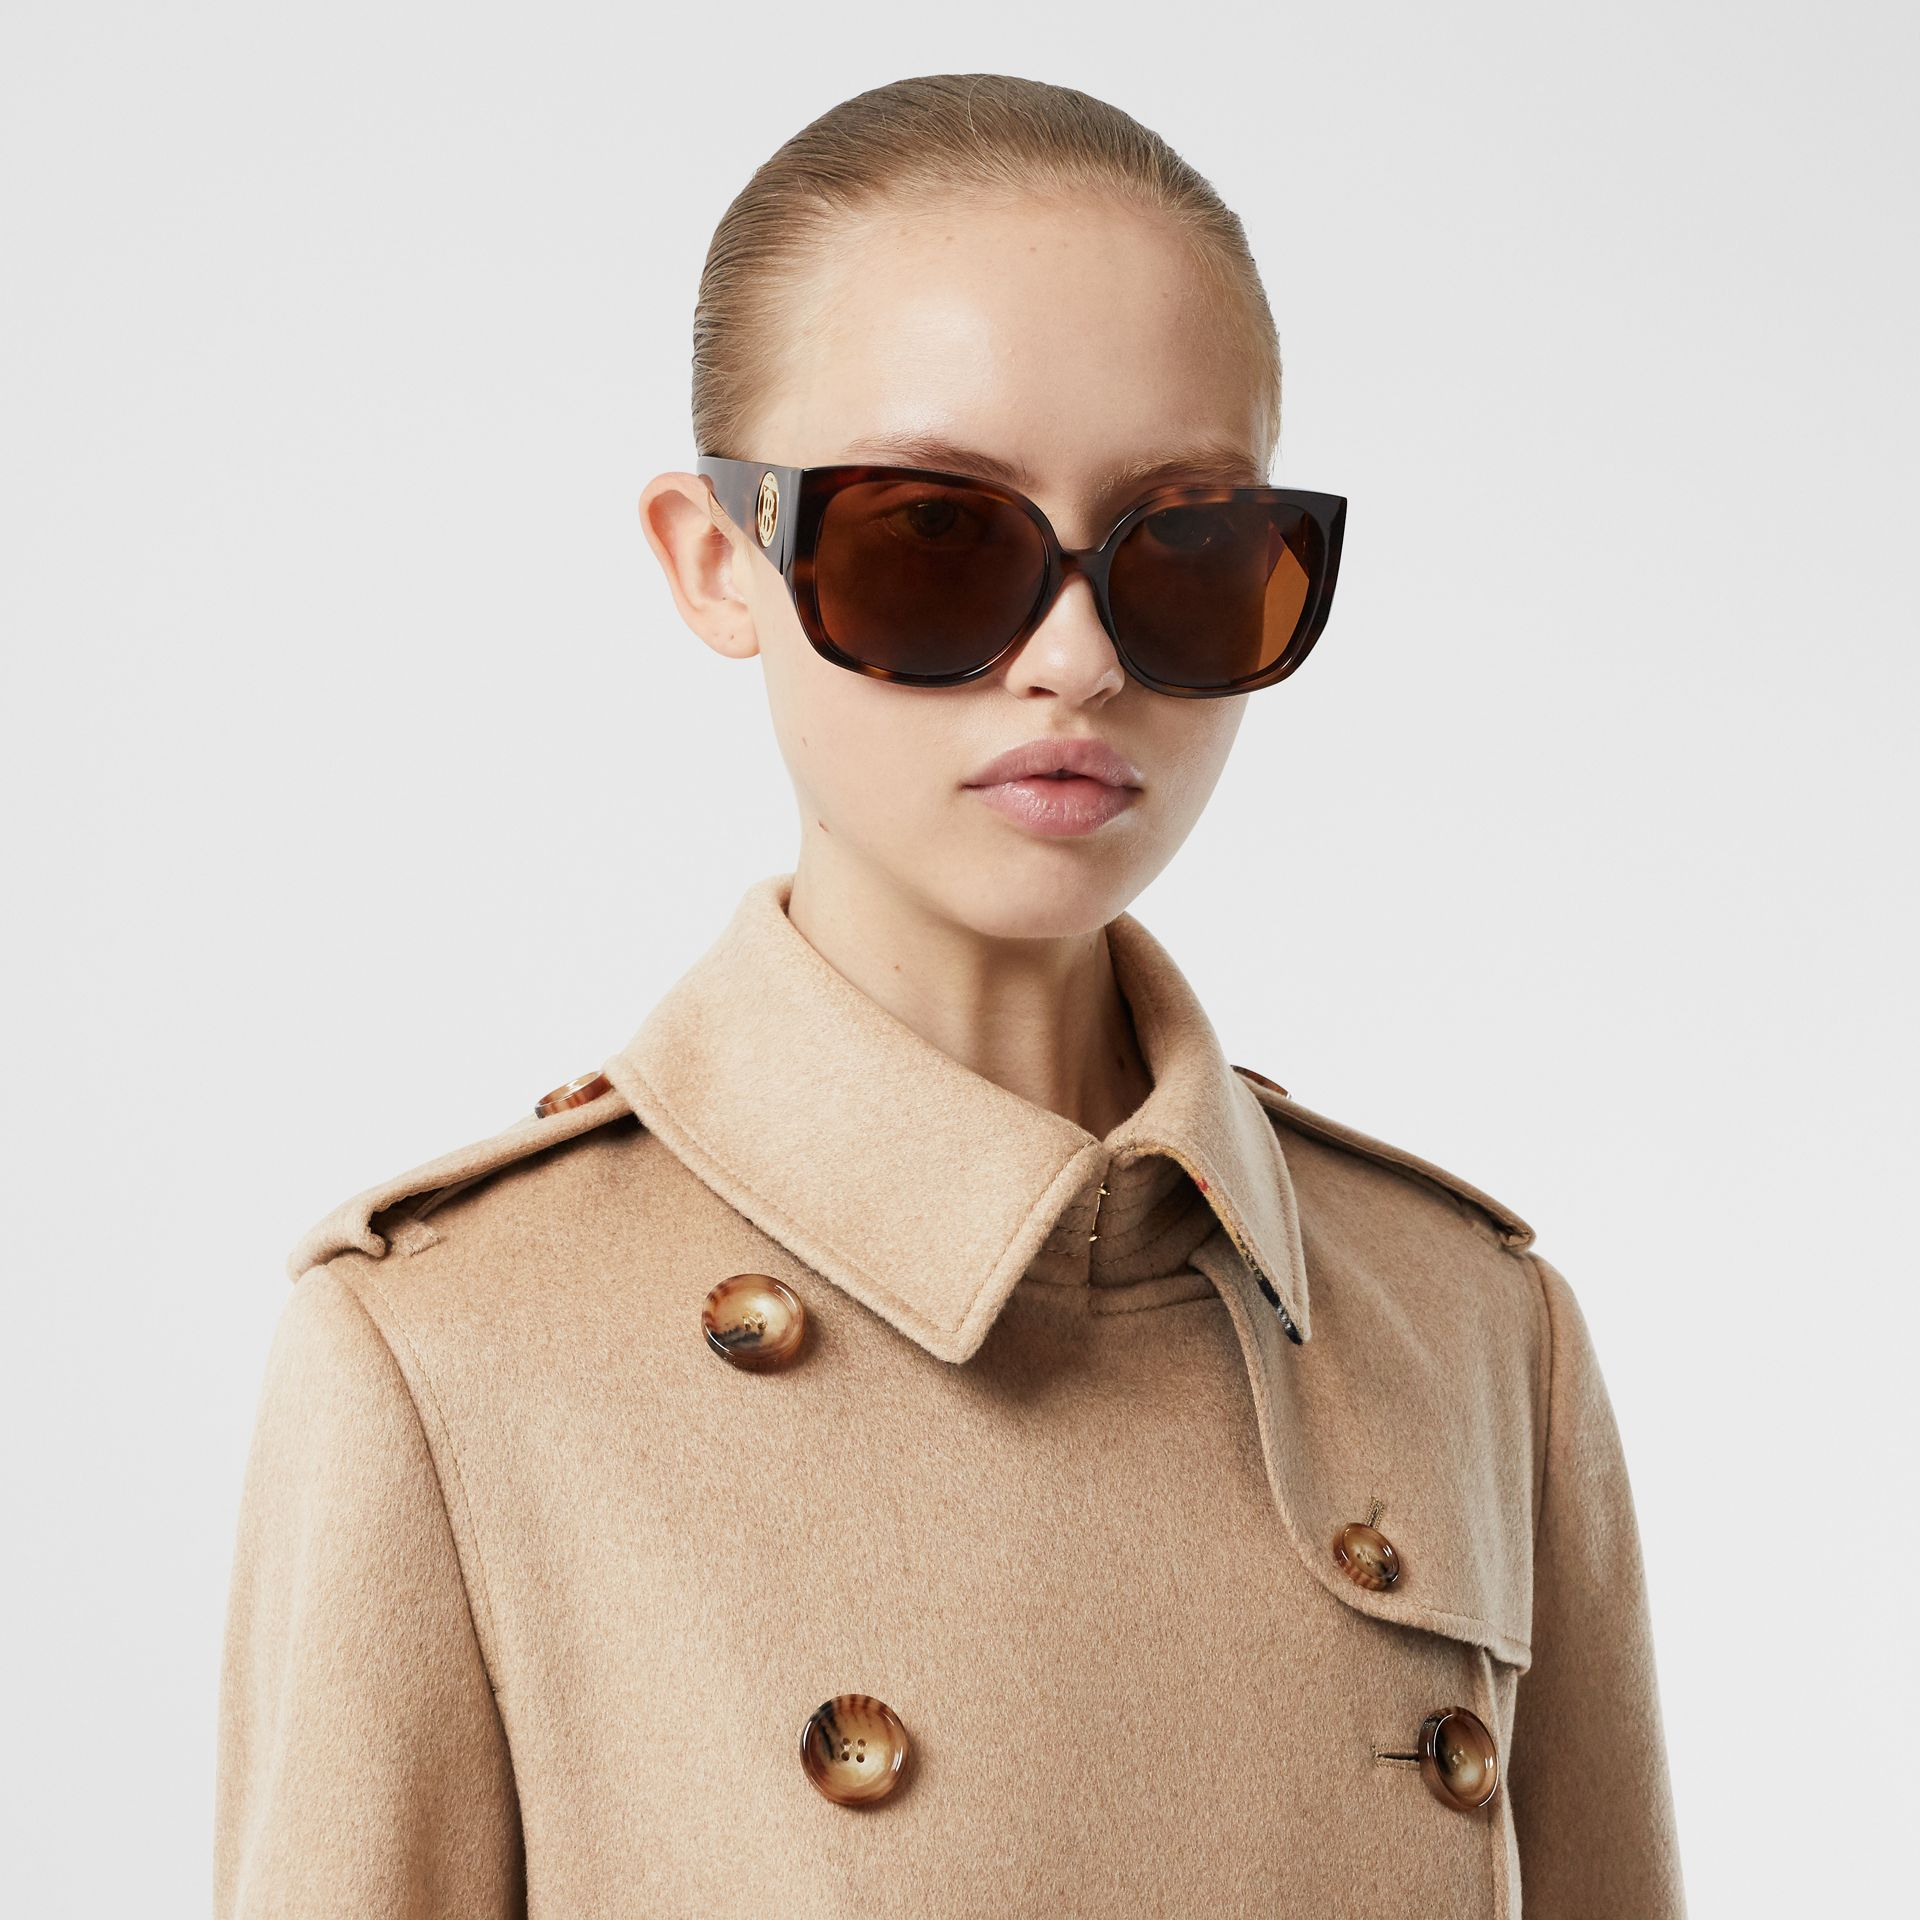 Cashmere Trench Coat in Camel - Women | Burberry Australia - gallery image 1